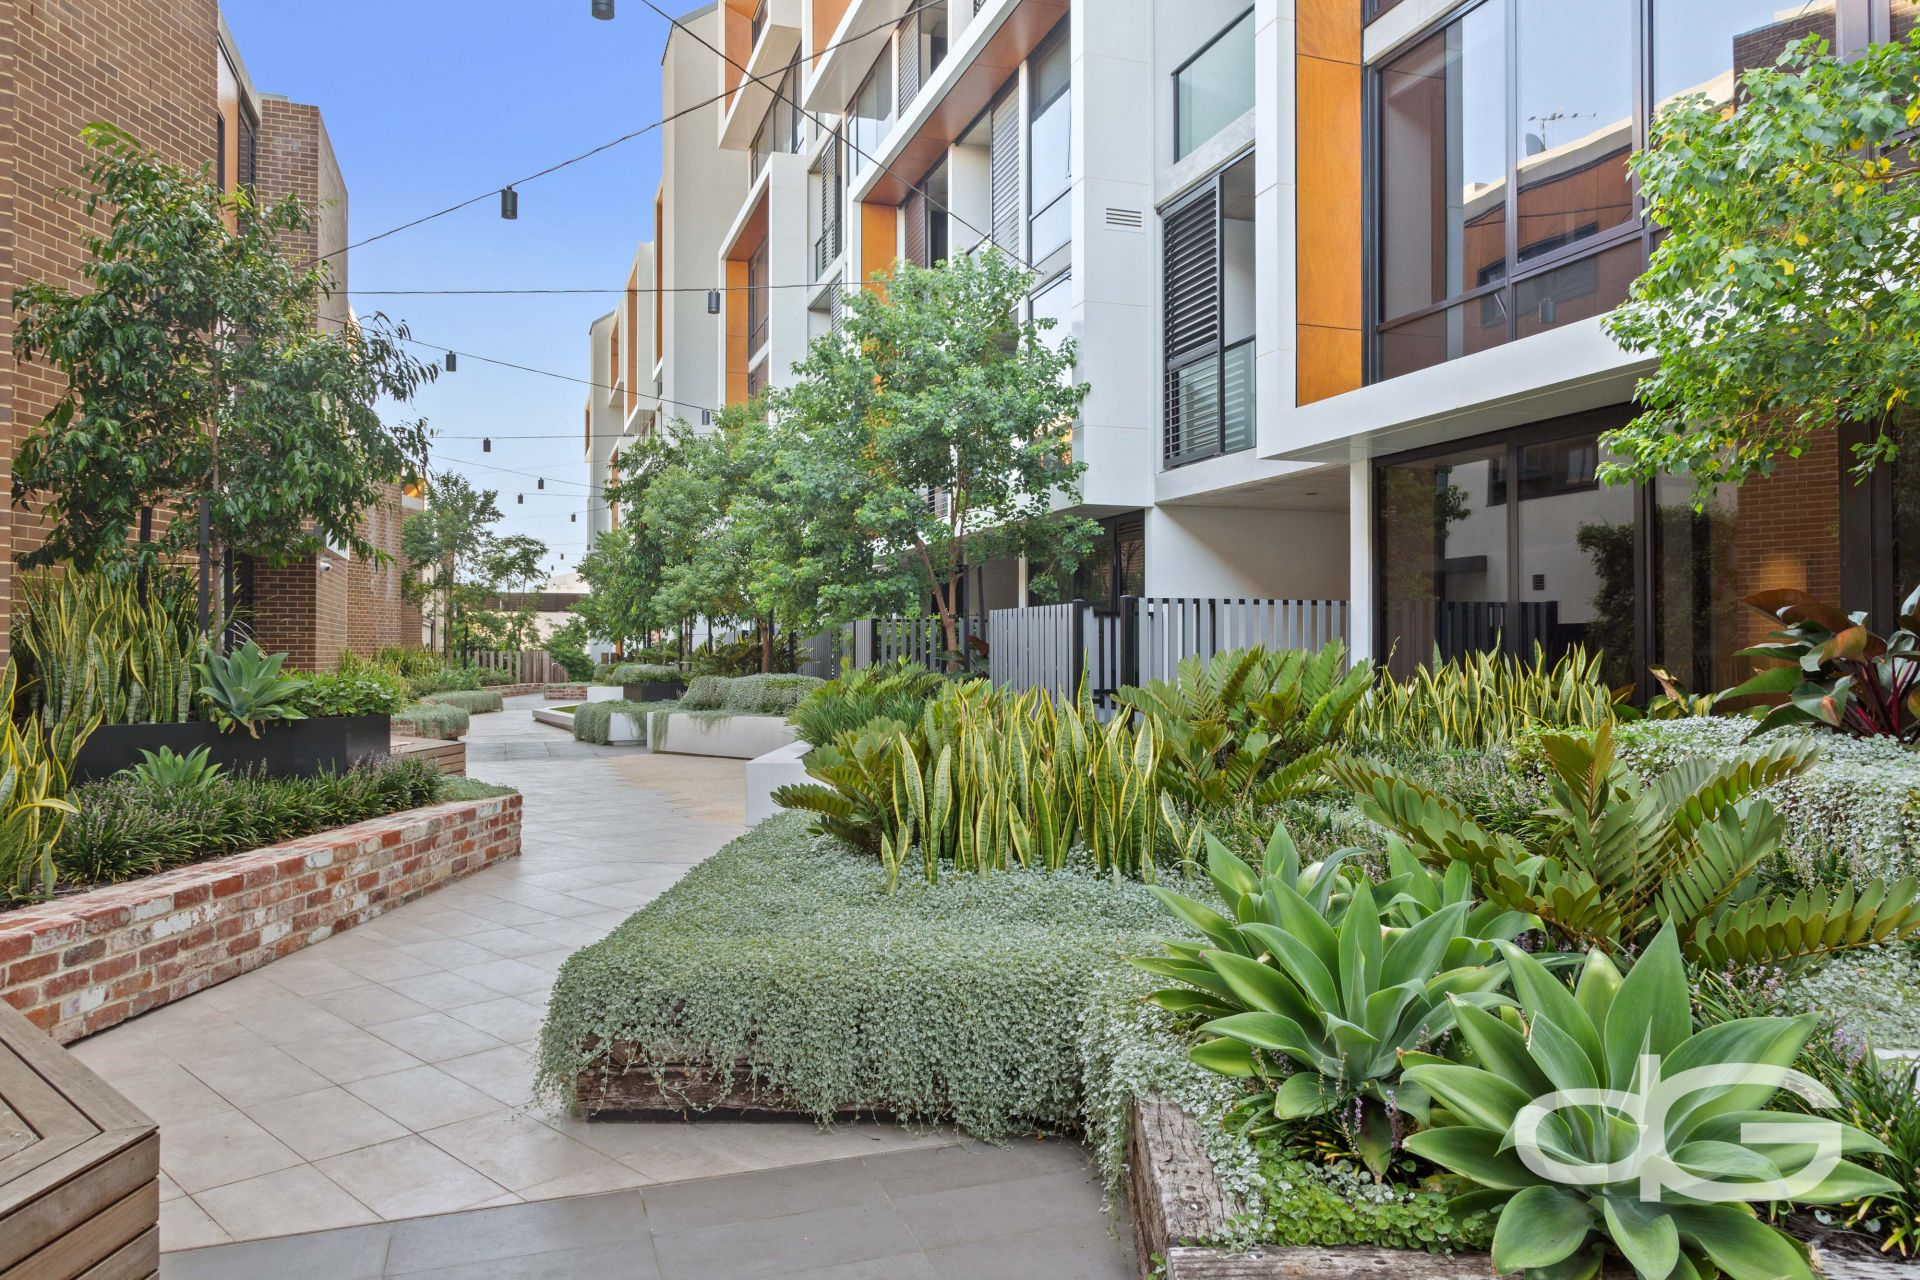 99/51 Queen Victoria Street, Fremantle